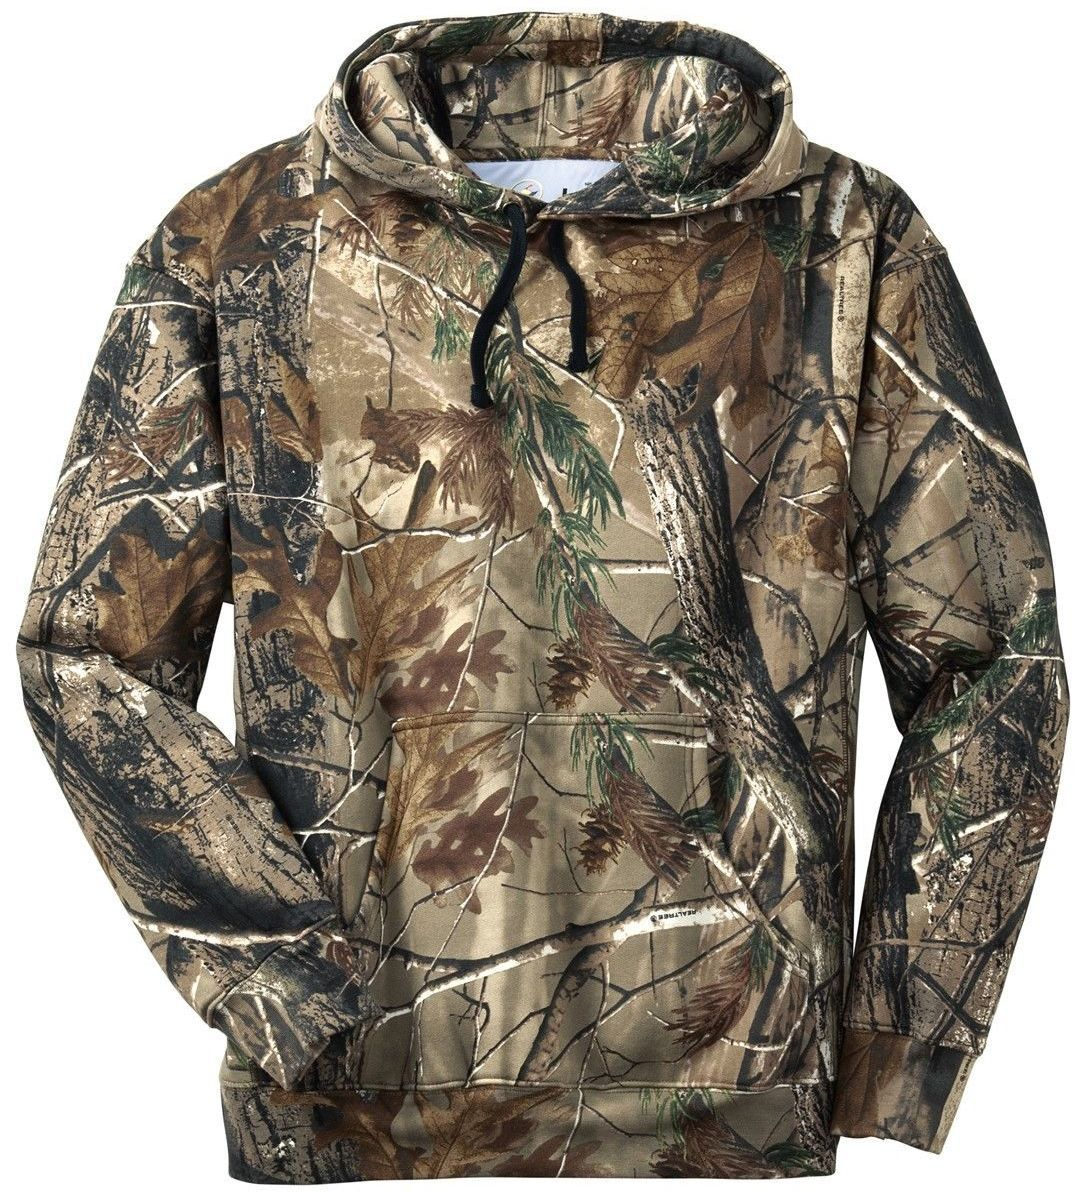 26003e9d99e55 Renegade Sportswear Men's Polyester Camouflage Forest Print 10 Oz.  Pull-Over Hooded Sweat.